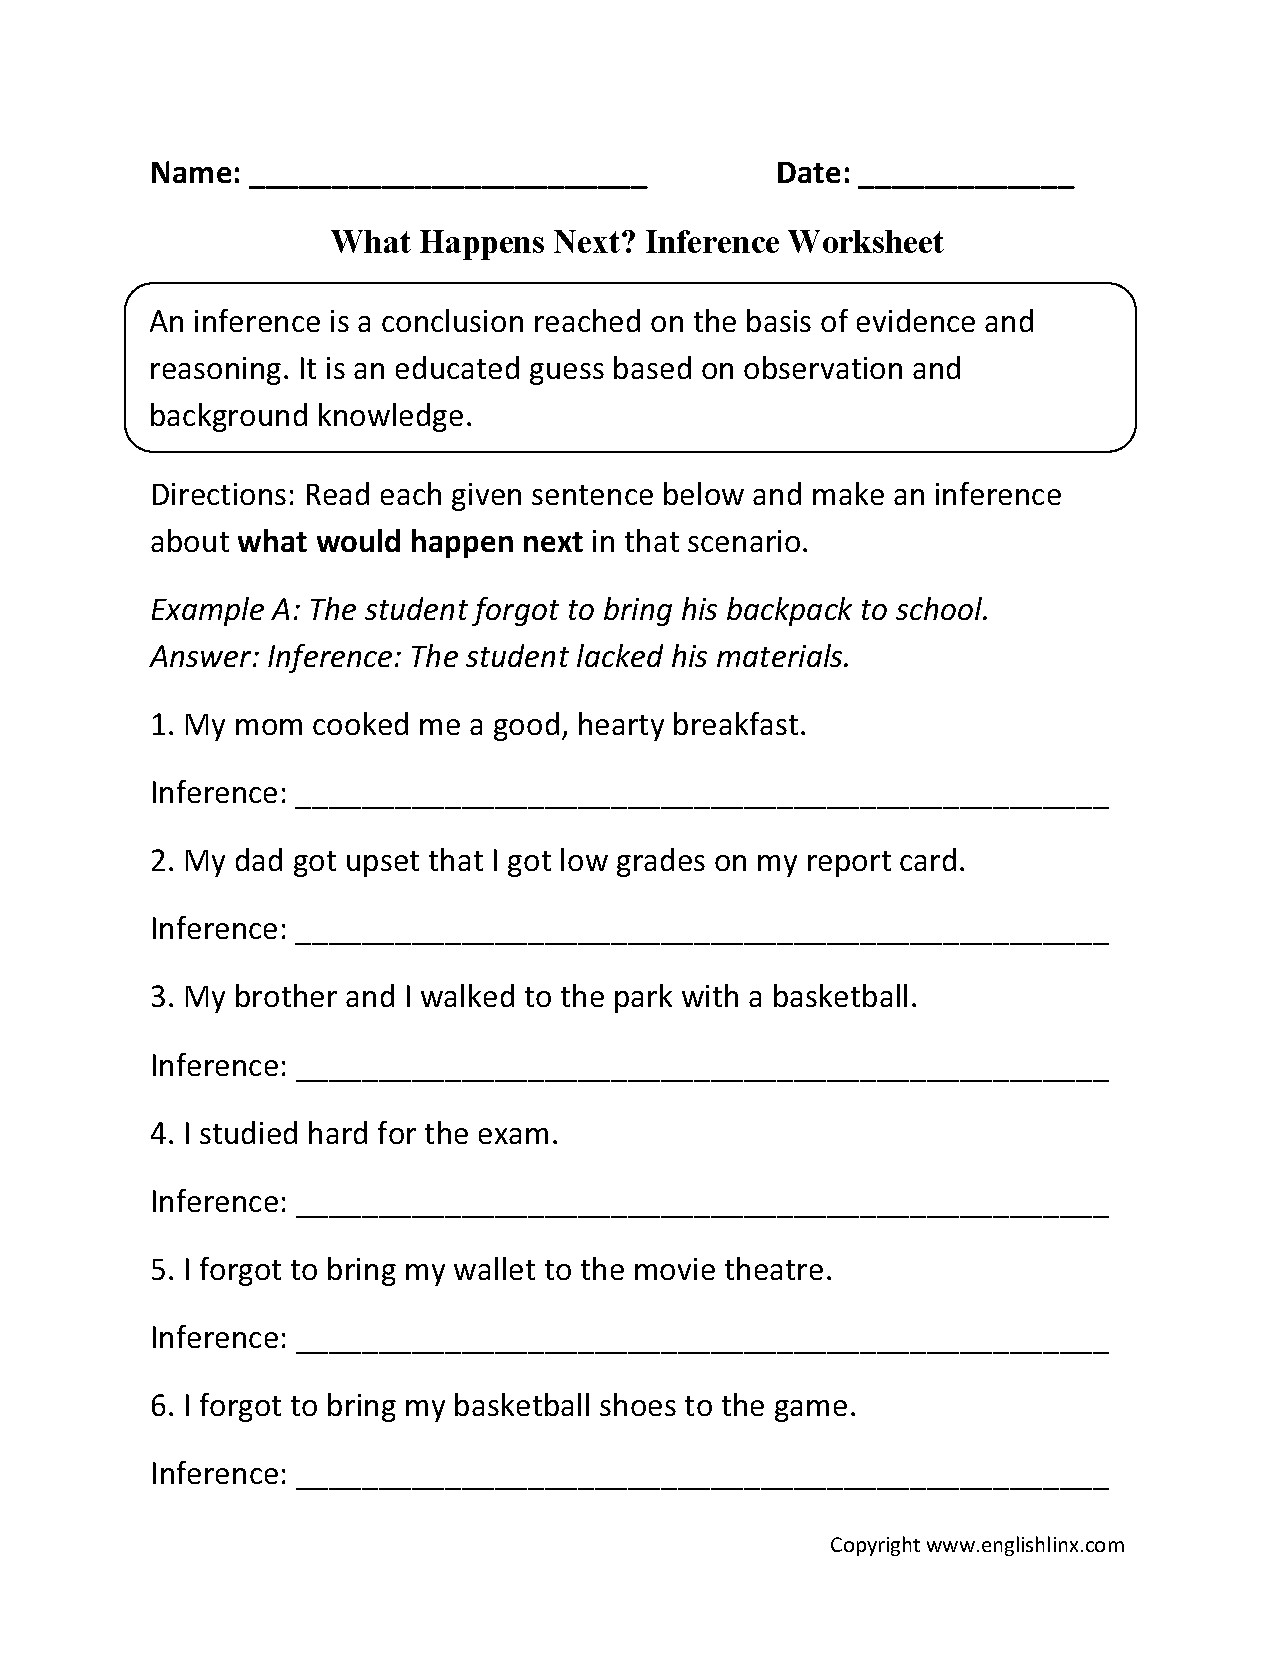 Draw Conclusions Worksheet 4th Grade Making Inferences Worksheets Grade 3